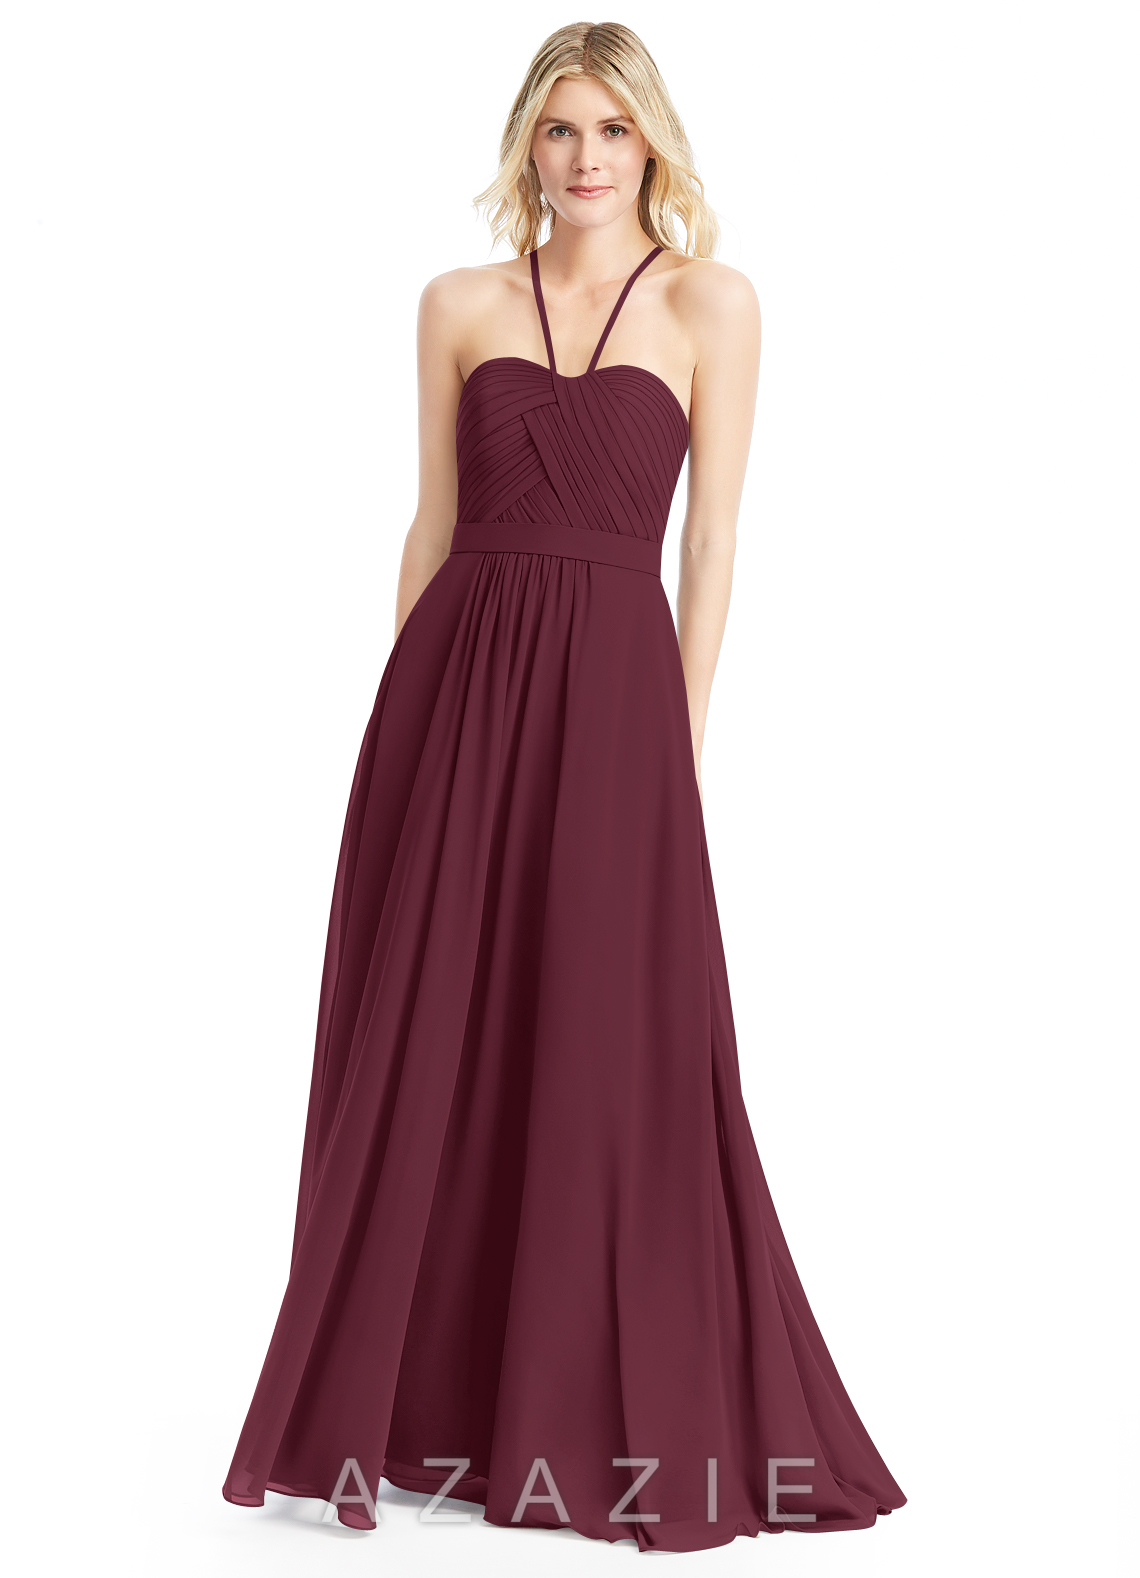 2af1ff5dace Azazie Felicity Bridesmaid Dress